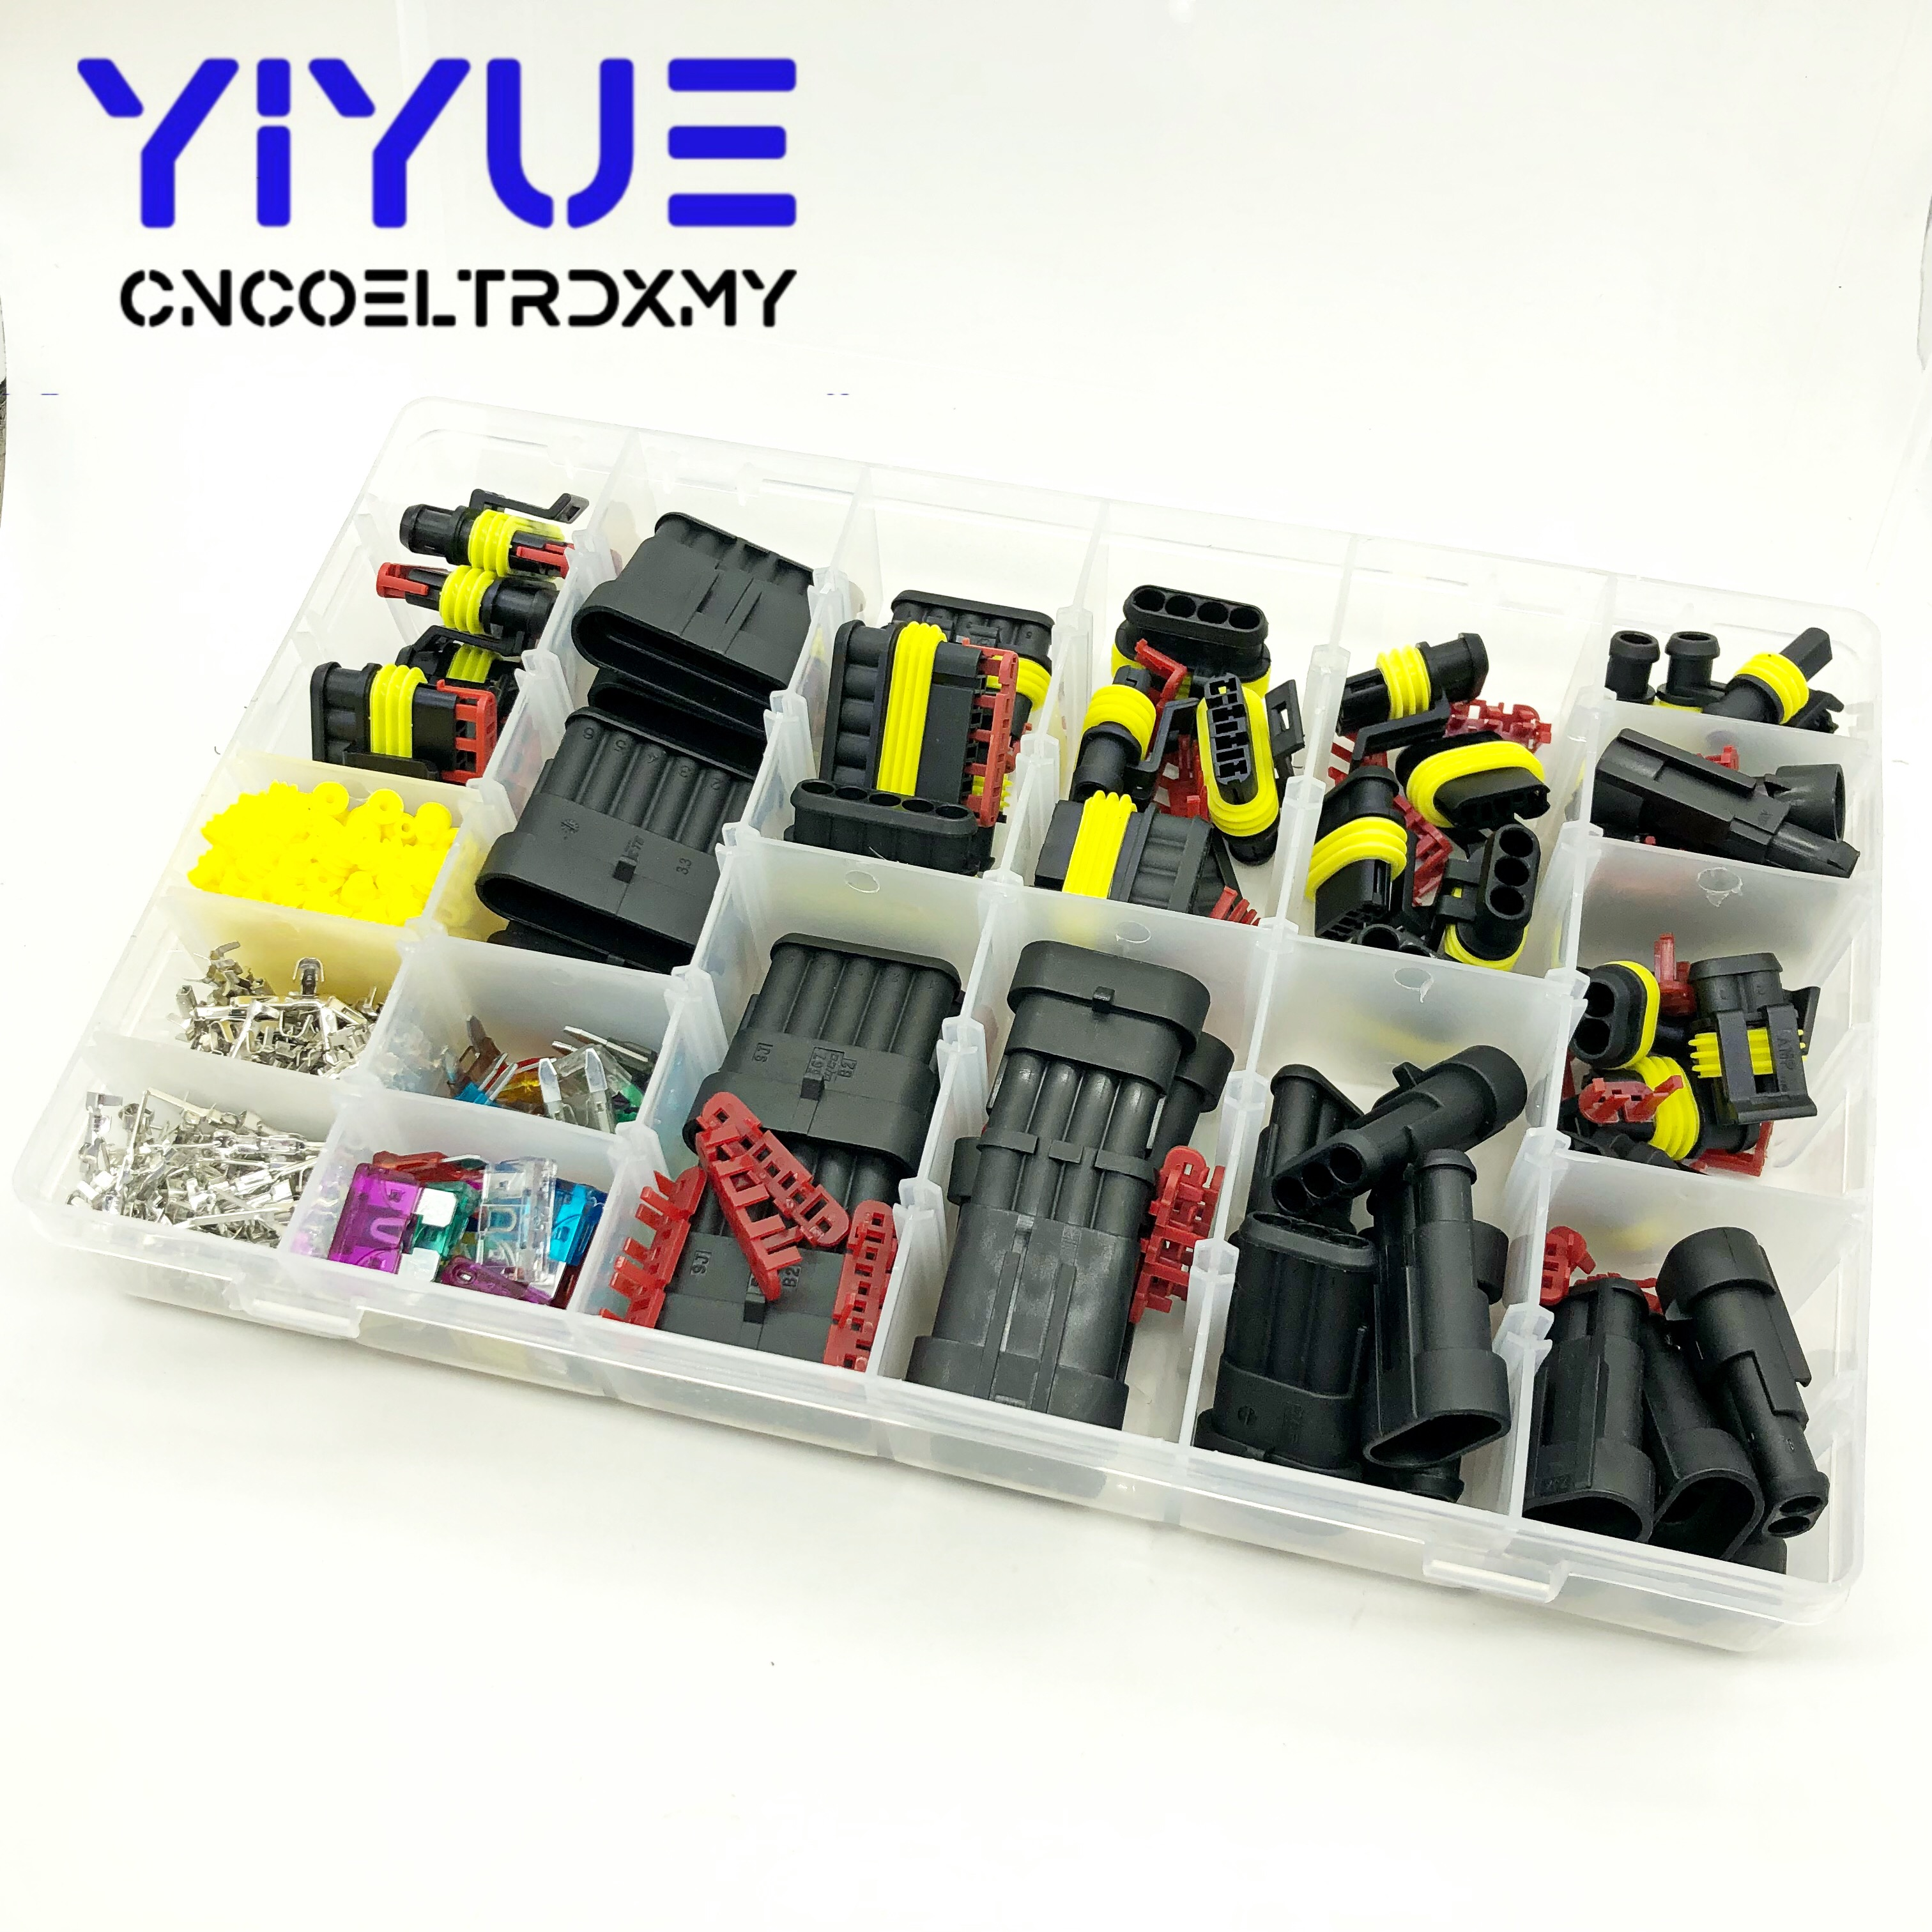 472 Pcs Superseal AMP Tyco Waterproof 12V Electrical Wire Connector Sets Kits with Crimp Terminal and Car Fuse small medium size